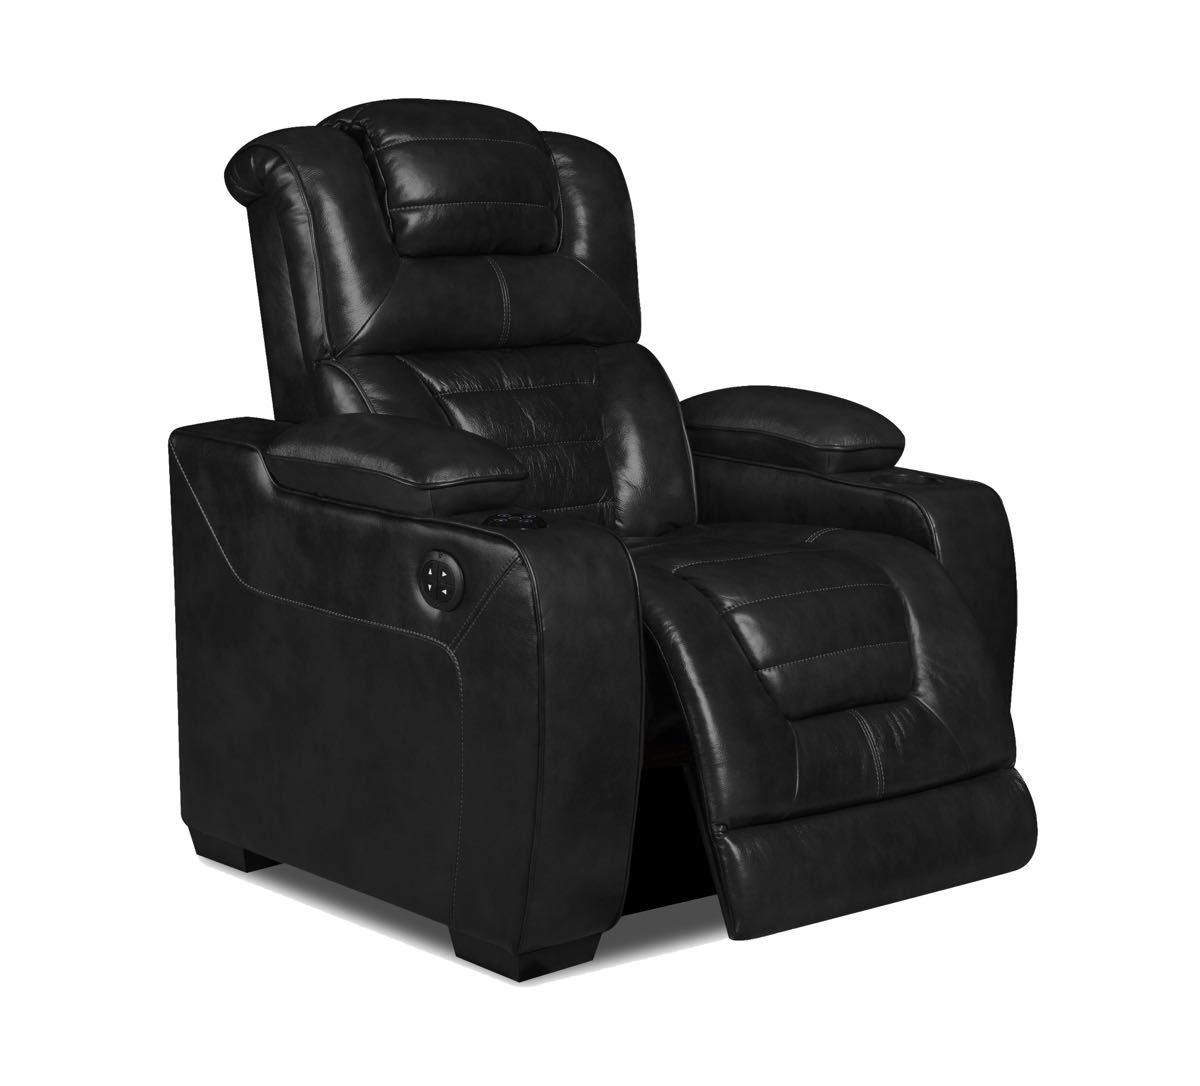 Desert Eclipse Bluetooth Theater Recliner